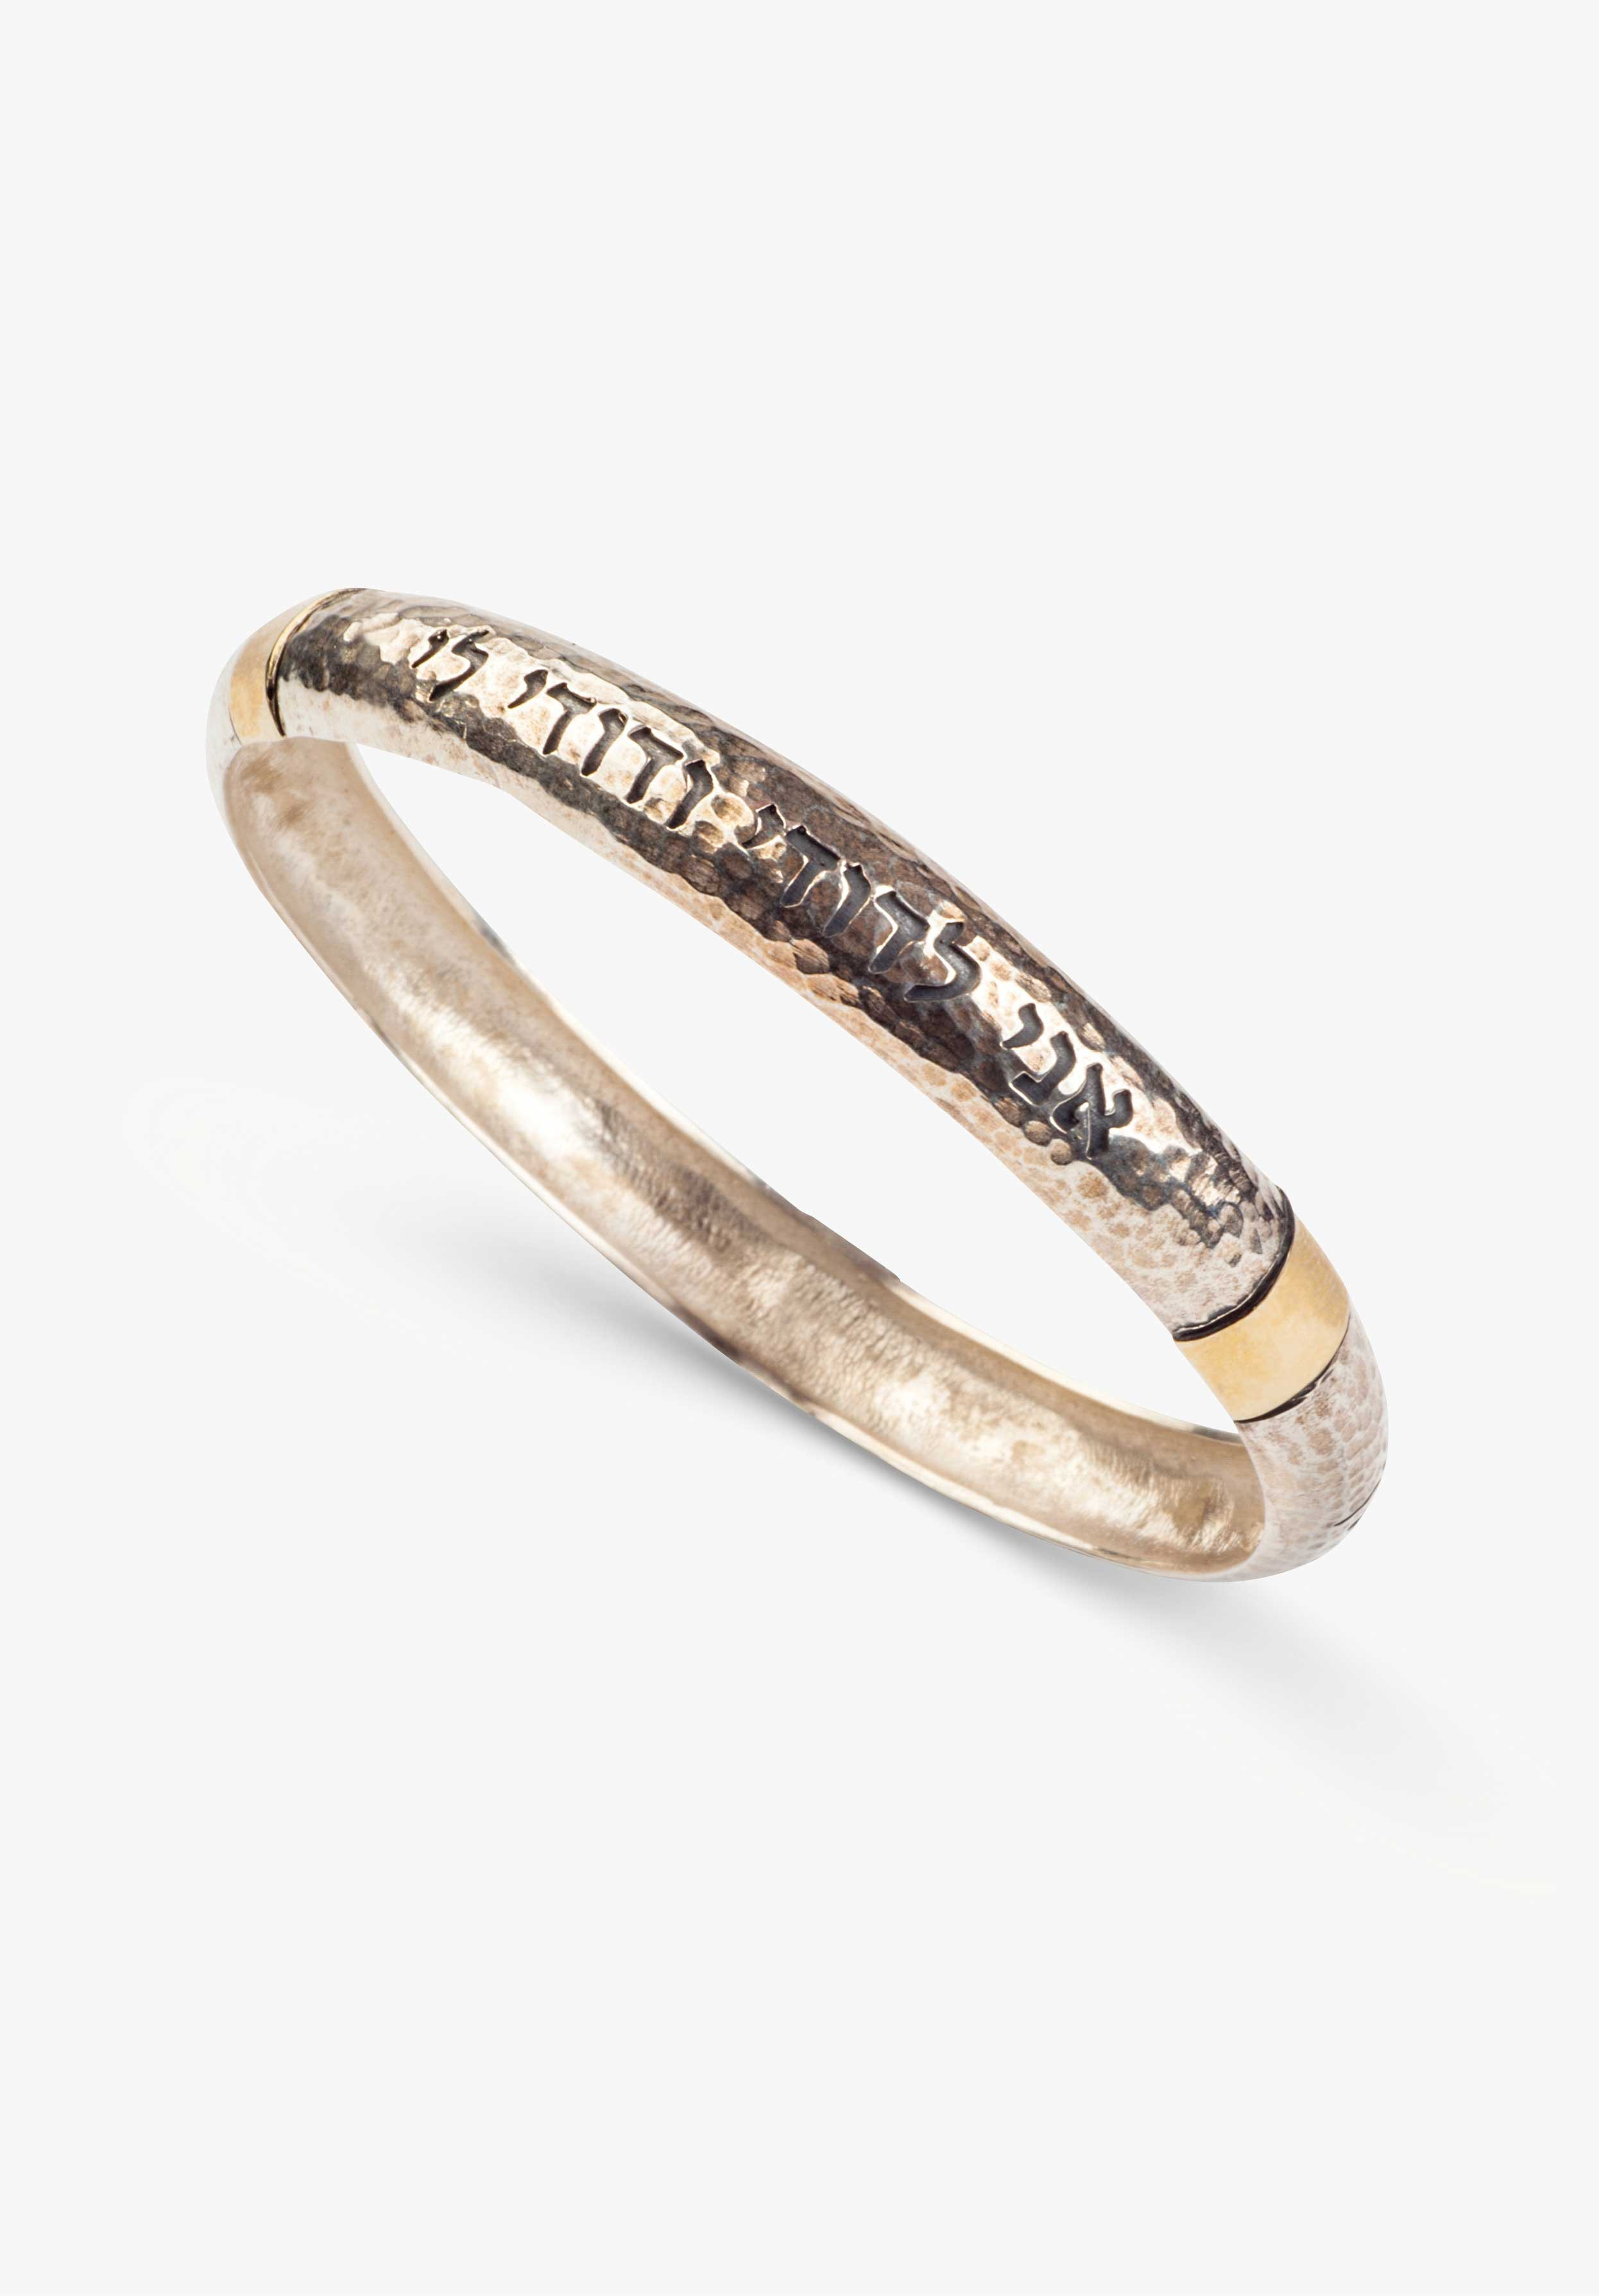 Silver and Gold Textured Bracelet